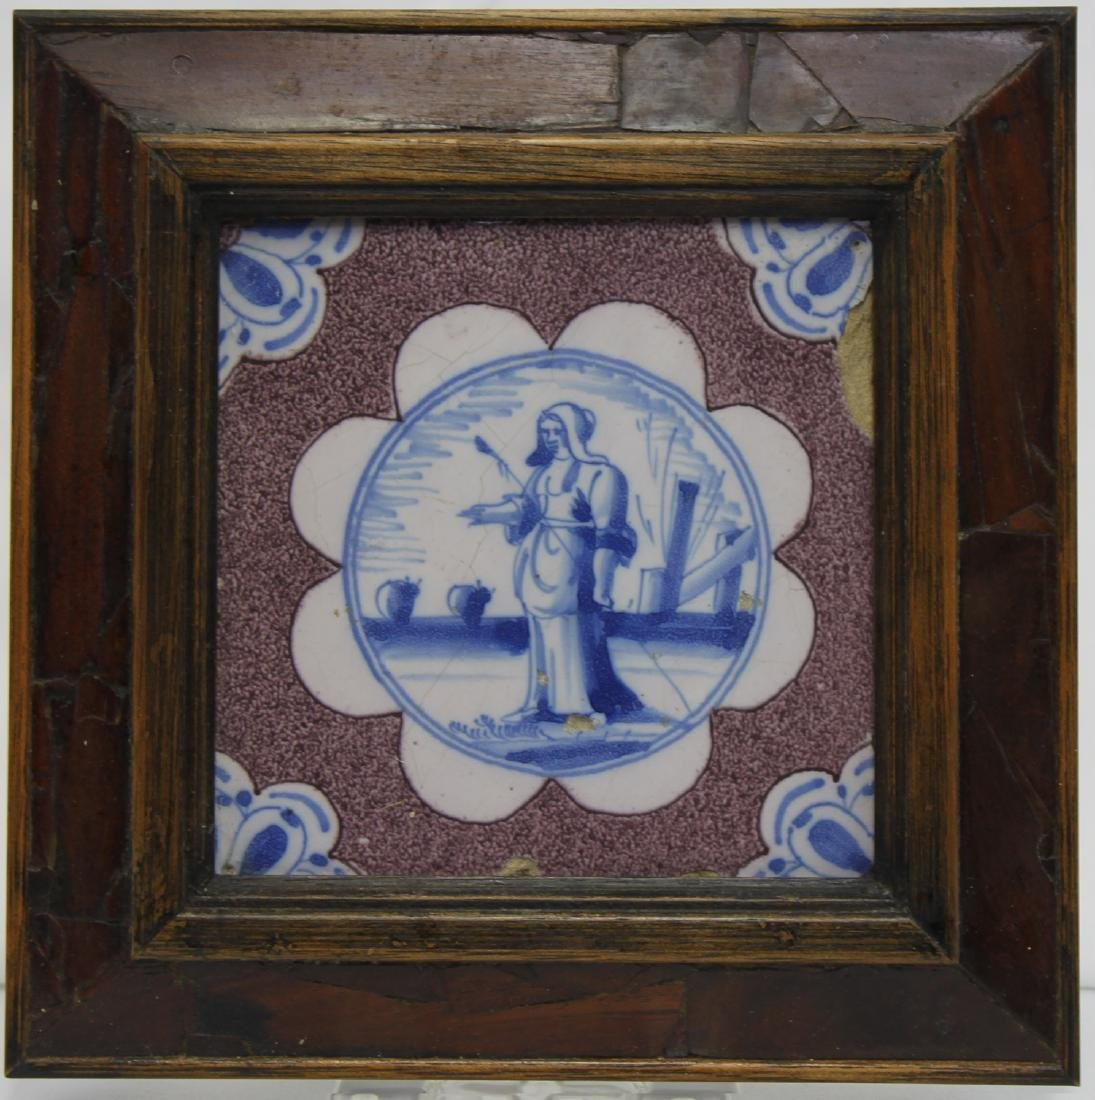 Pair of 17 Century Dutch Delft Purple and Blue Tiles - 2